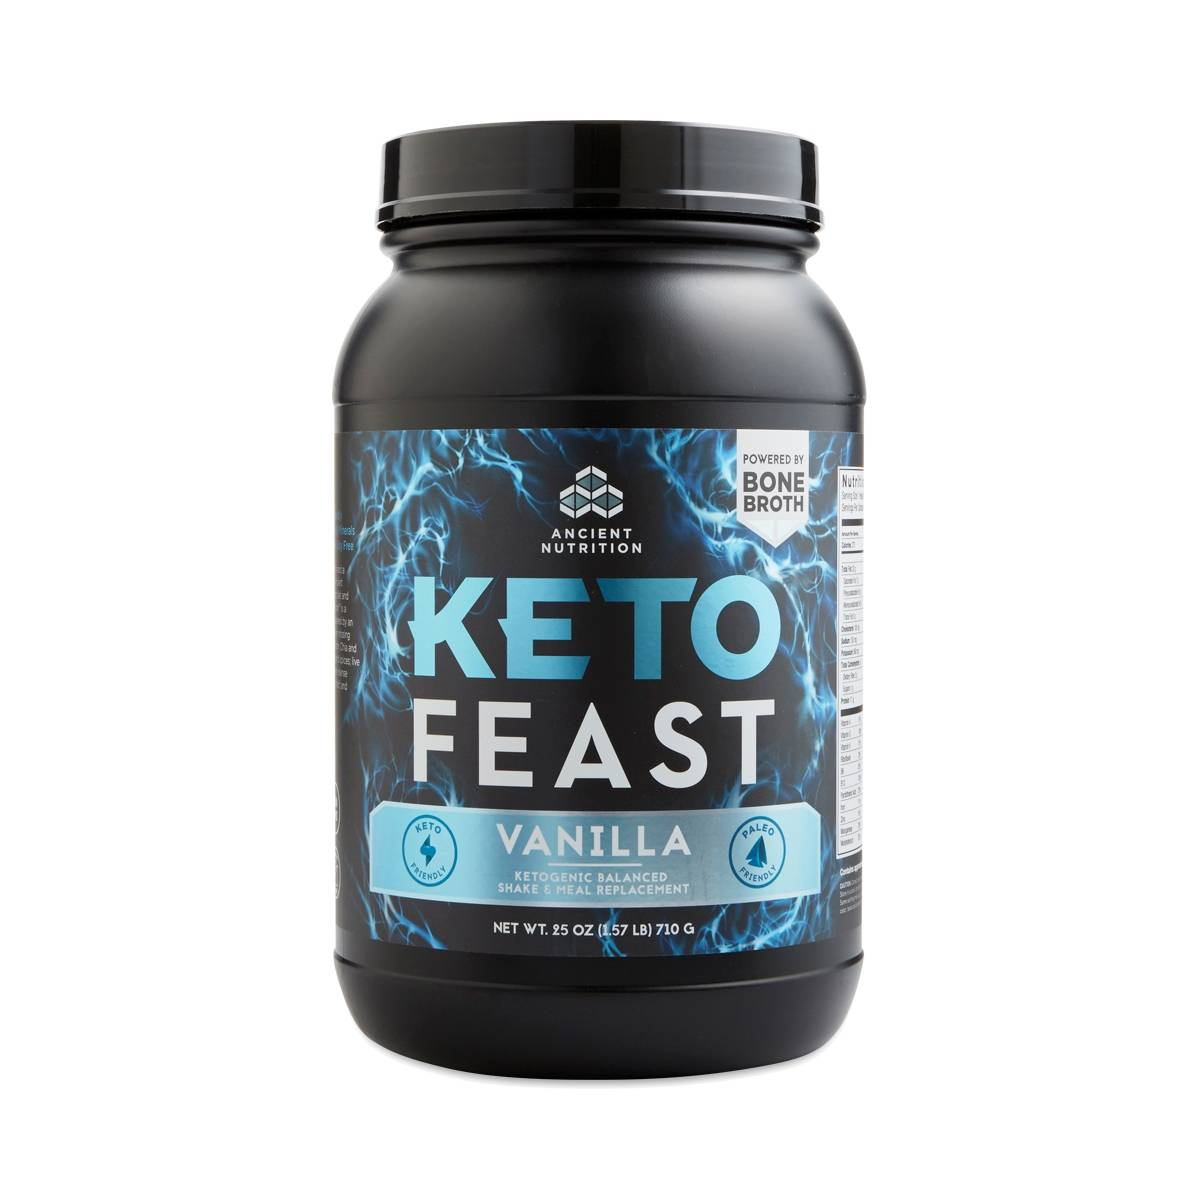 Ancient Nutrition Keto Feast Vanilla Thrive Market